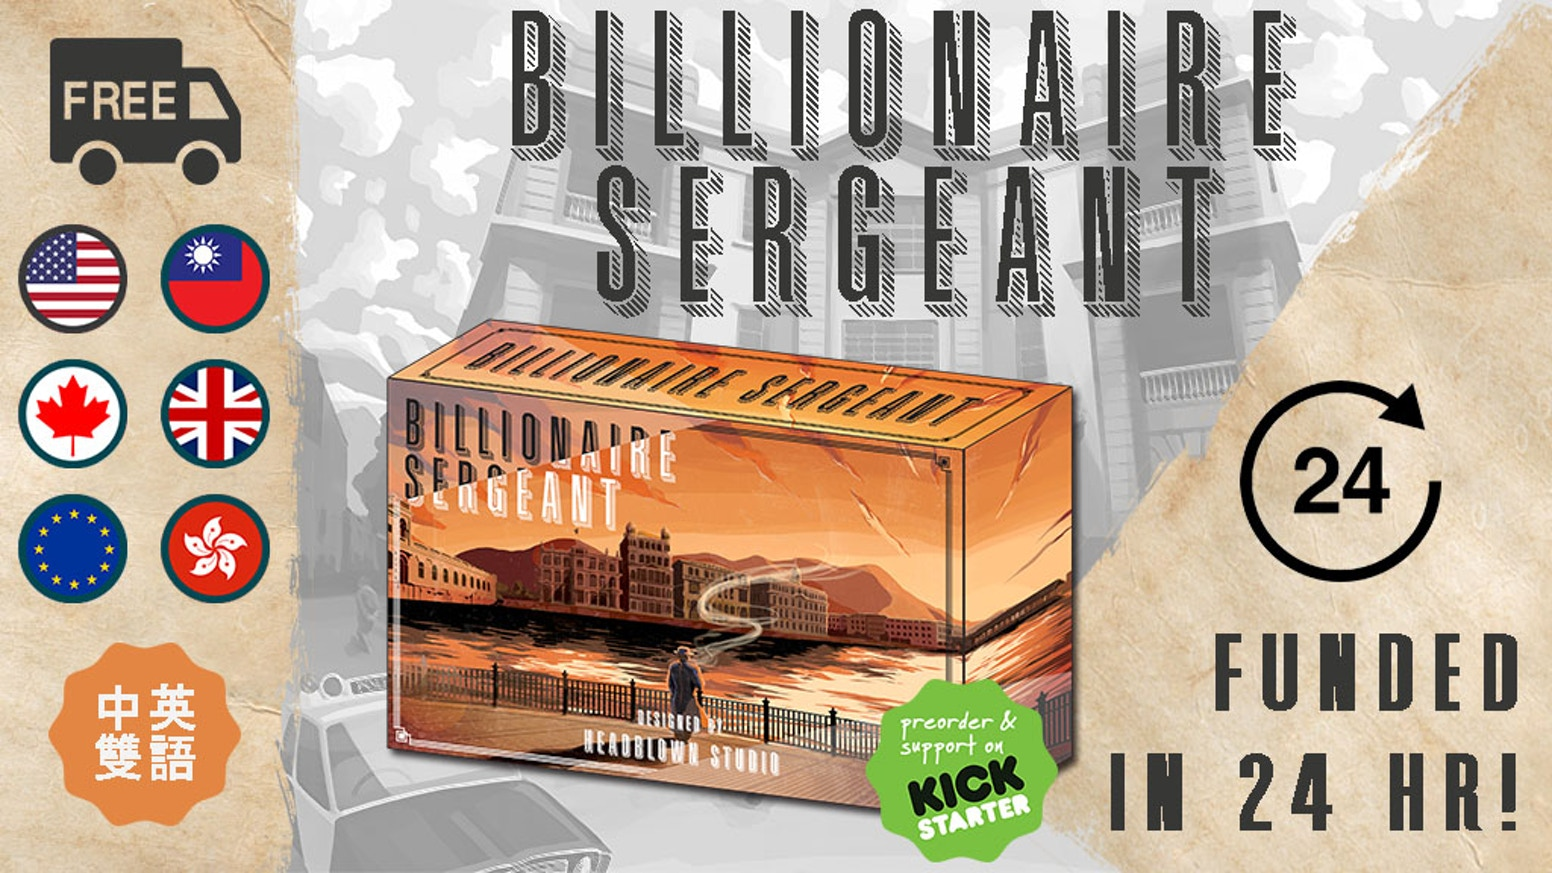 Billionaire Sergeant is a 4-6 player social deduction game which about justice vs corruption and teamwork vs betrayal